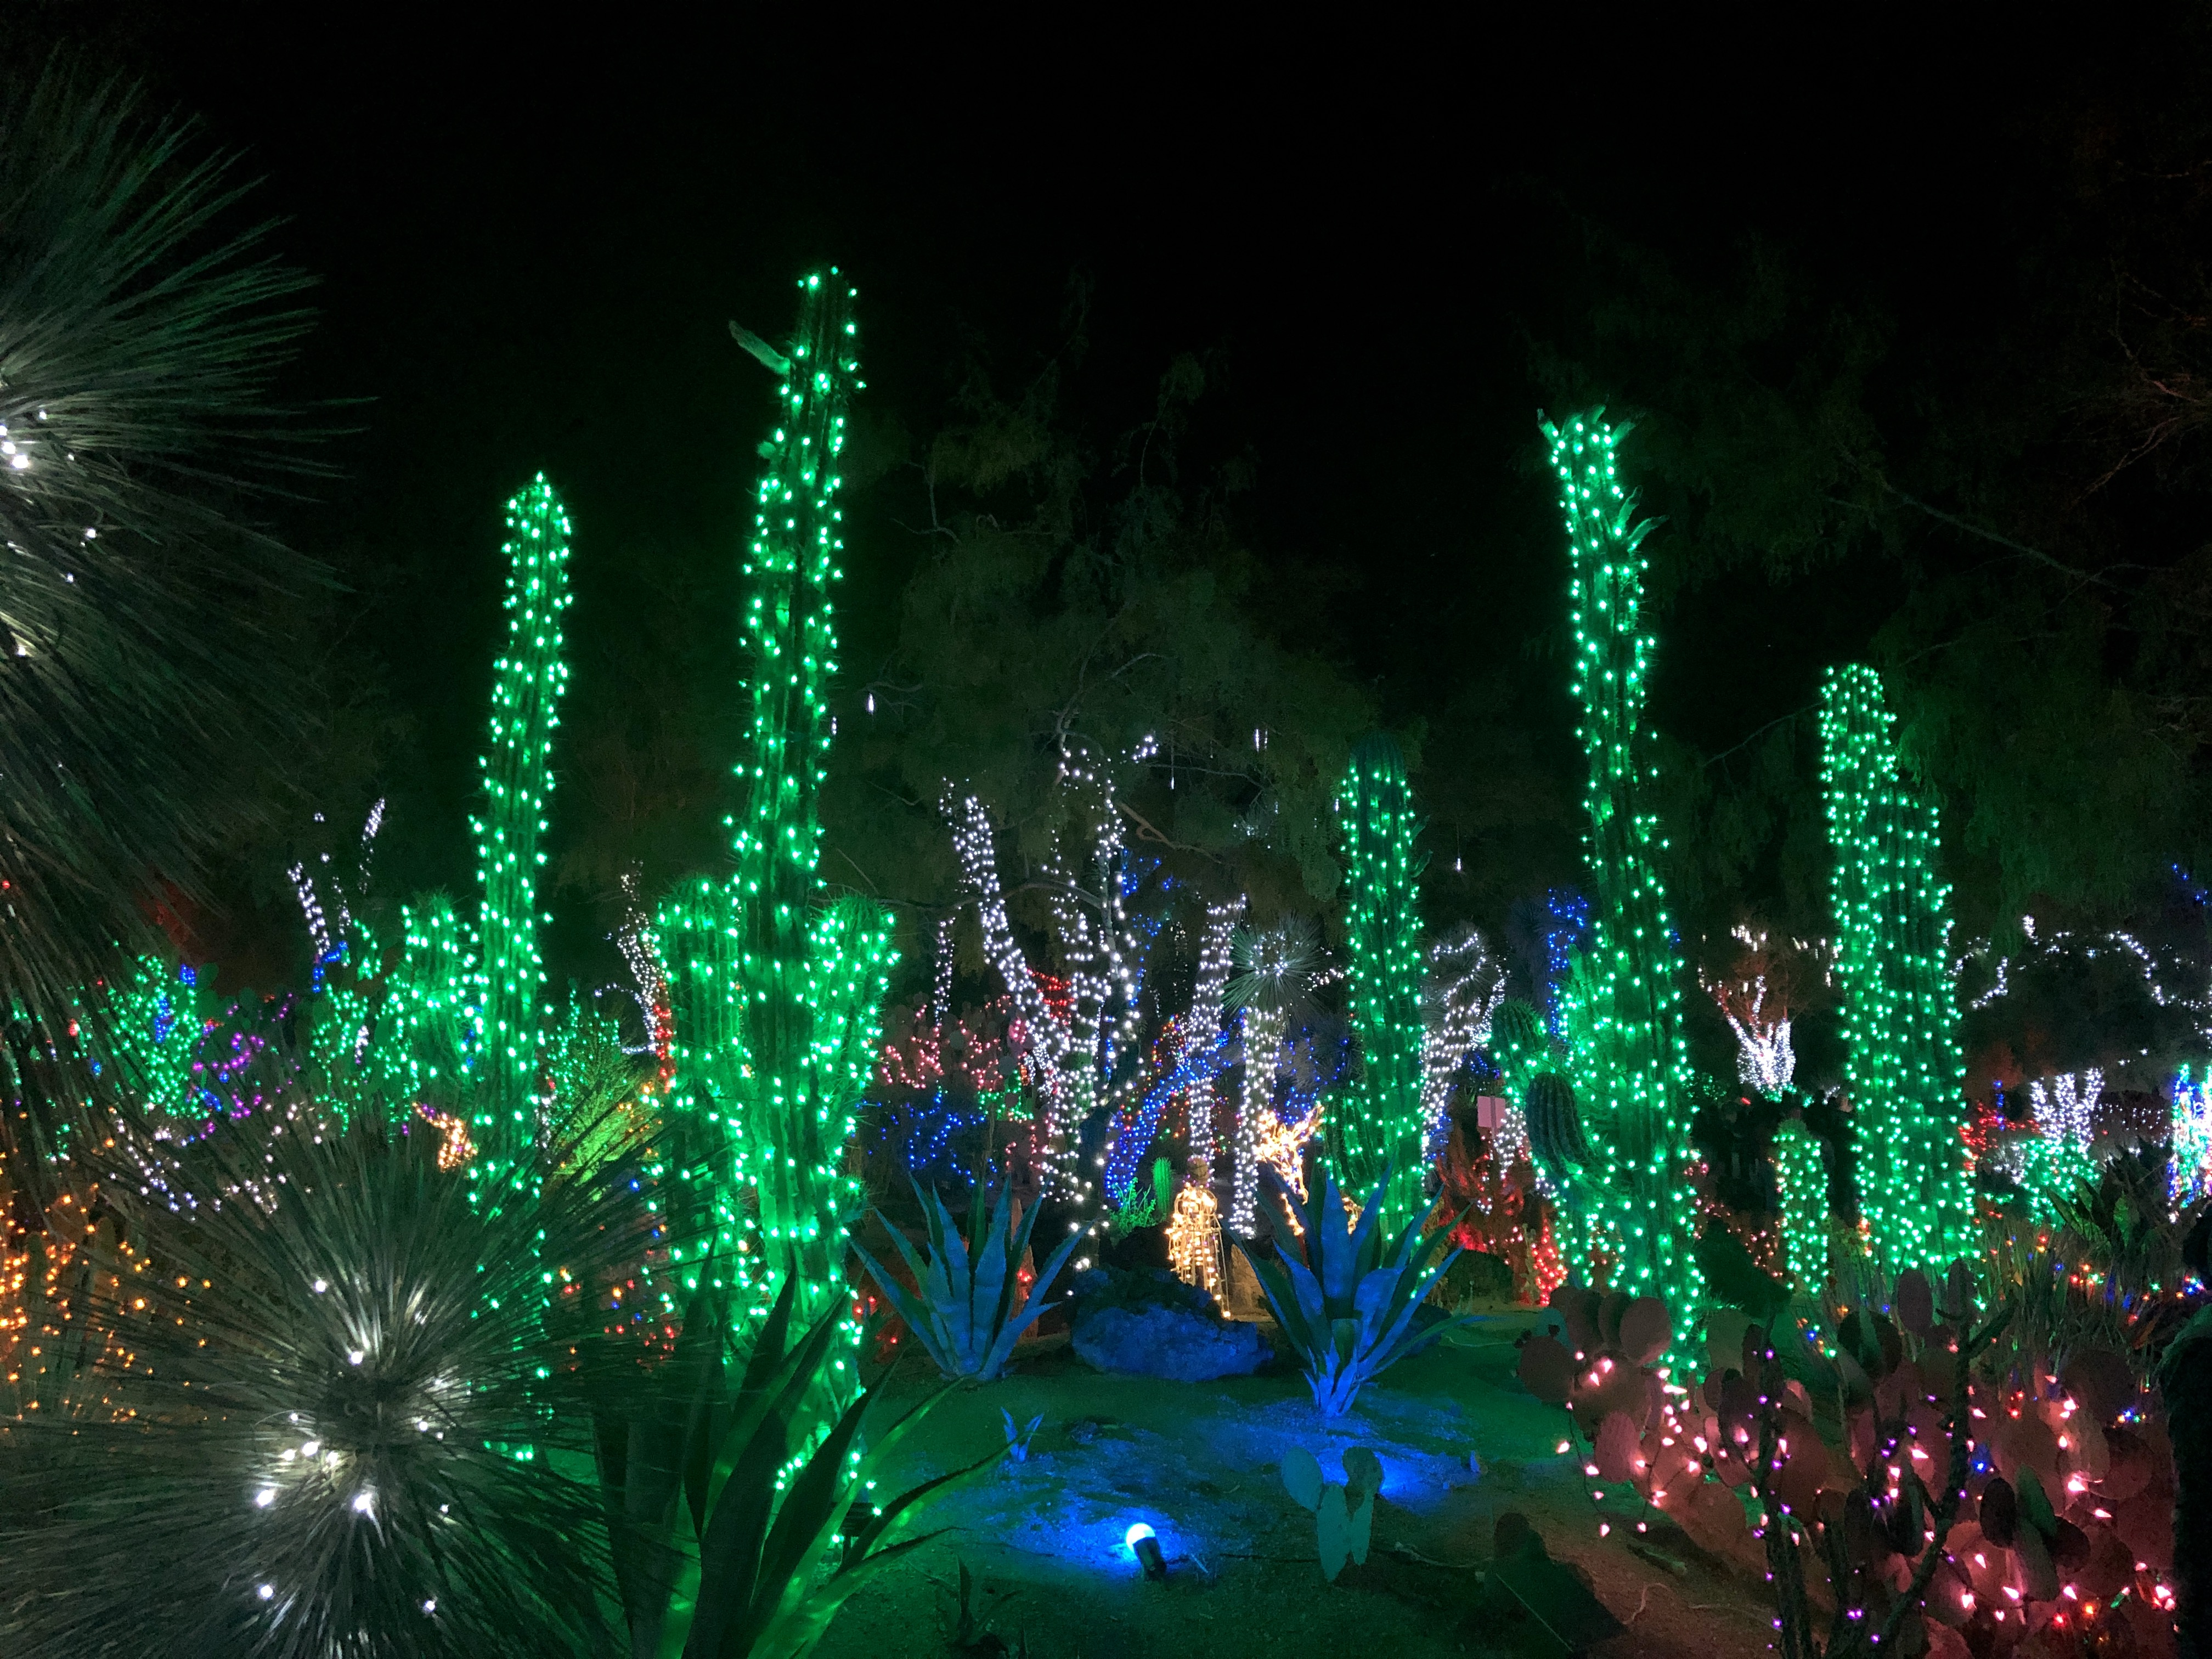 Tall cacti bedecked with Christmas lights.